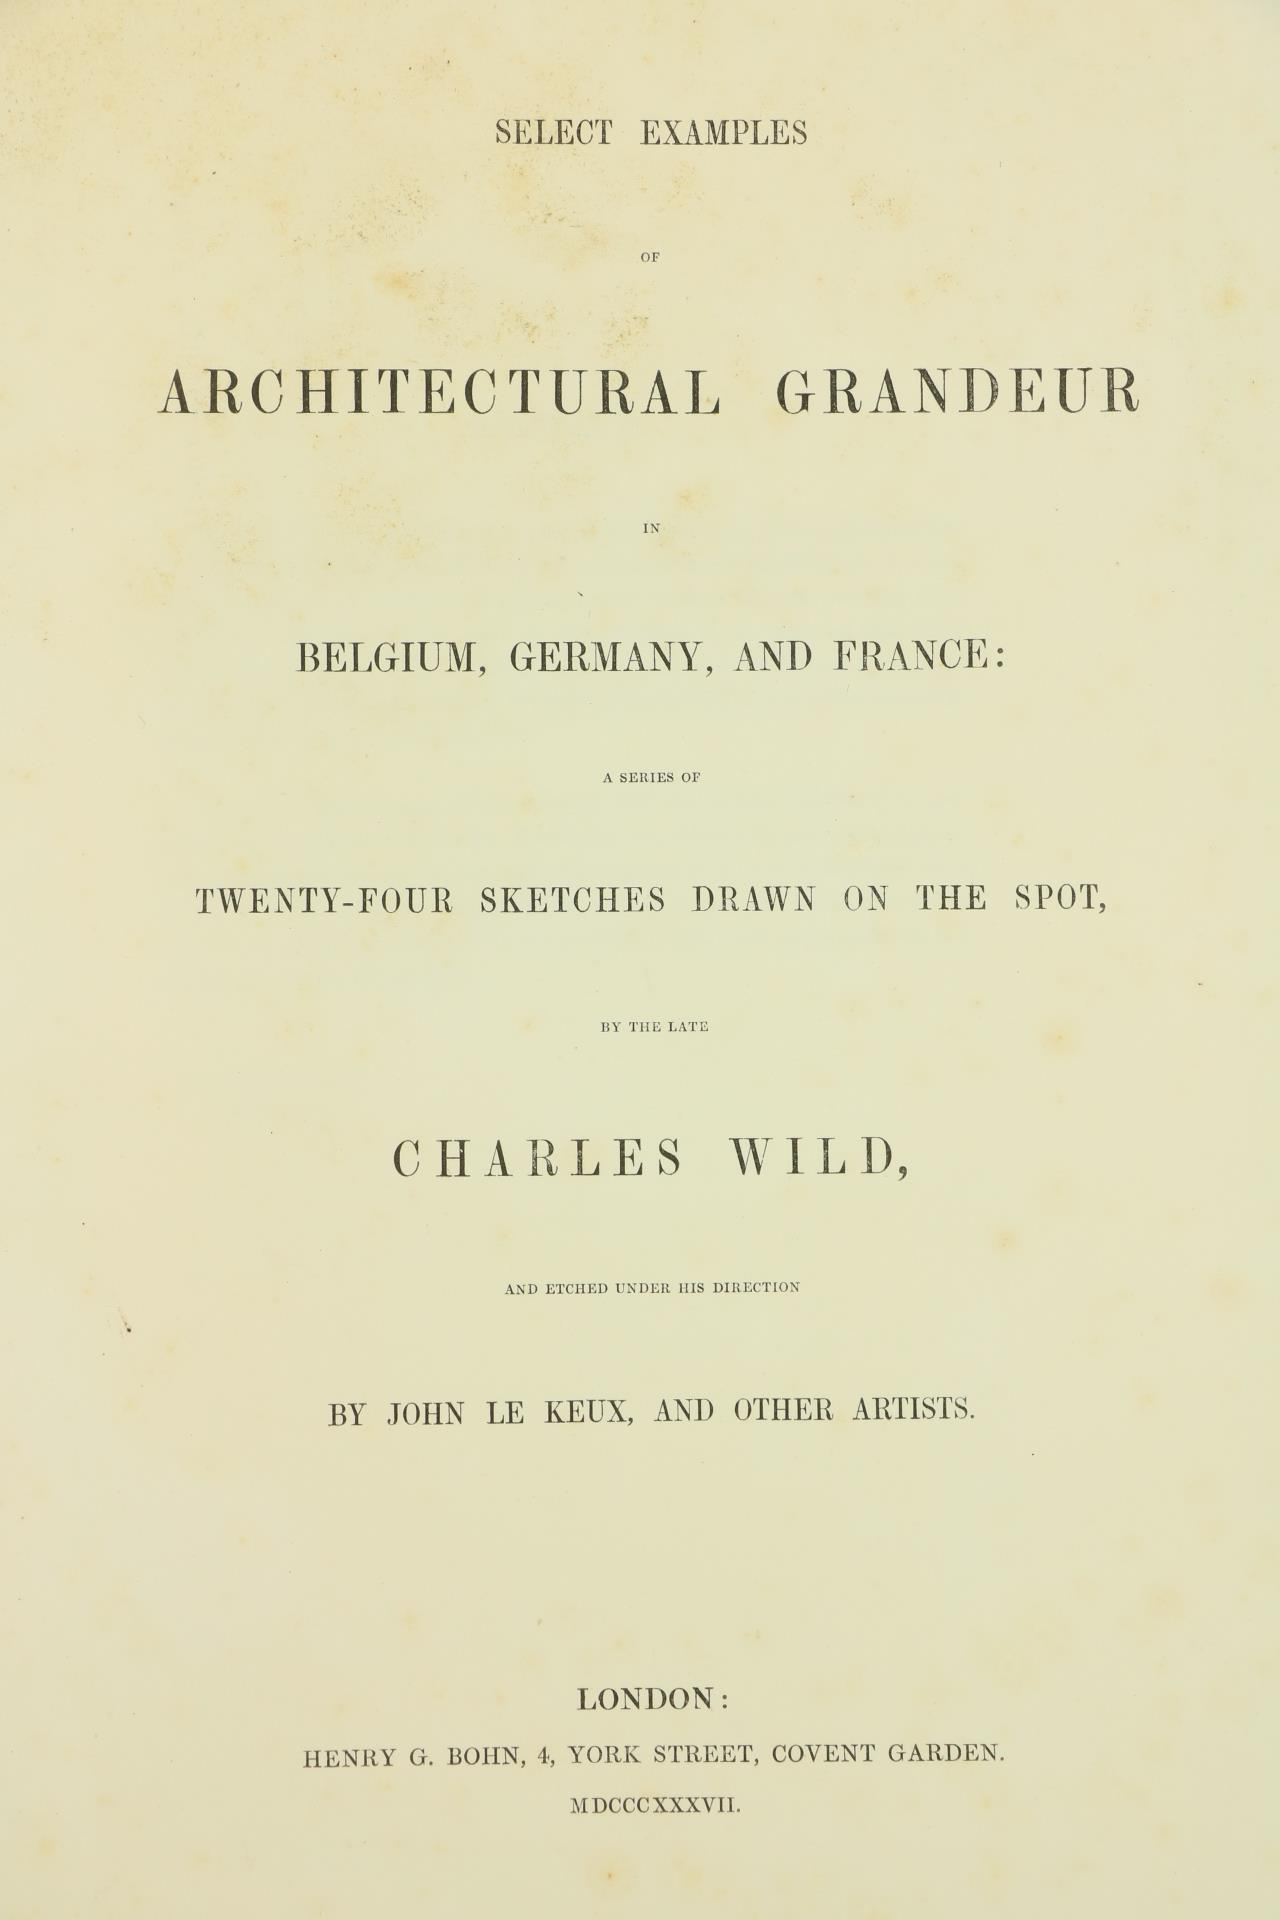 Wild (Charles)ÿSelect Examples of Architectural Grandeur in Belgium, Germany and France, Lg. folio - Image 2 of 6